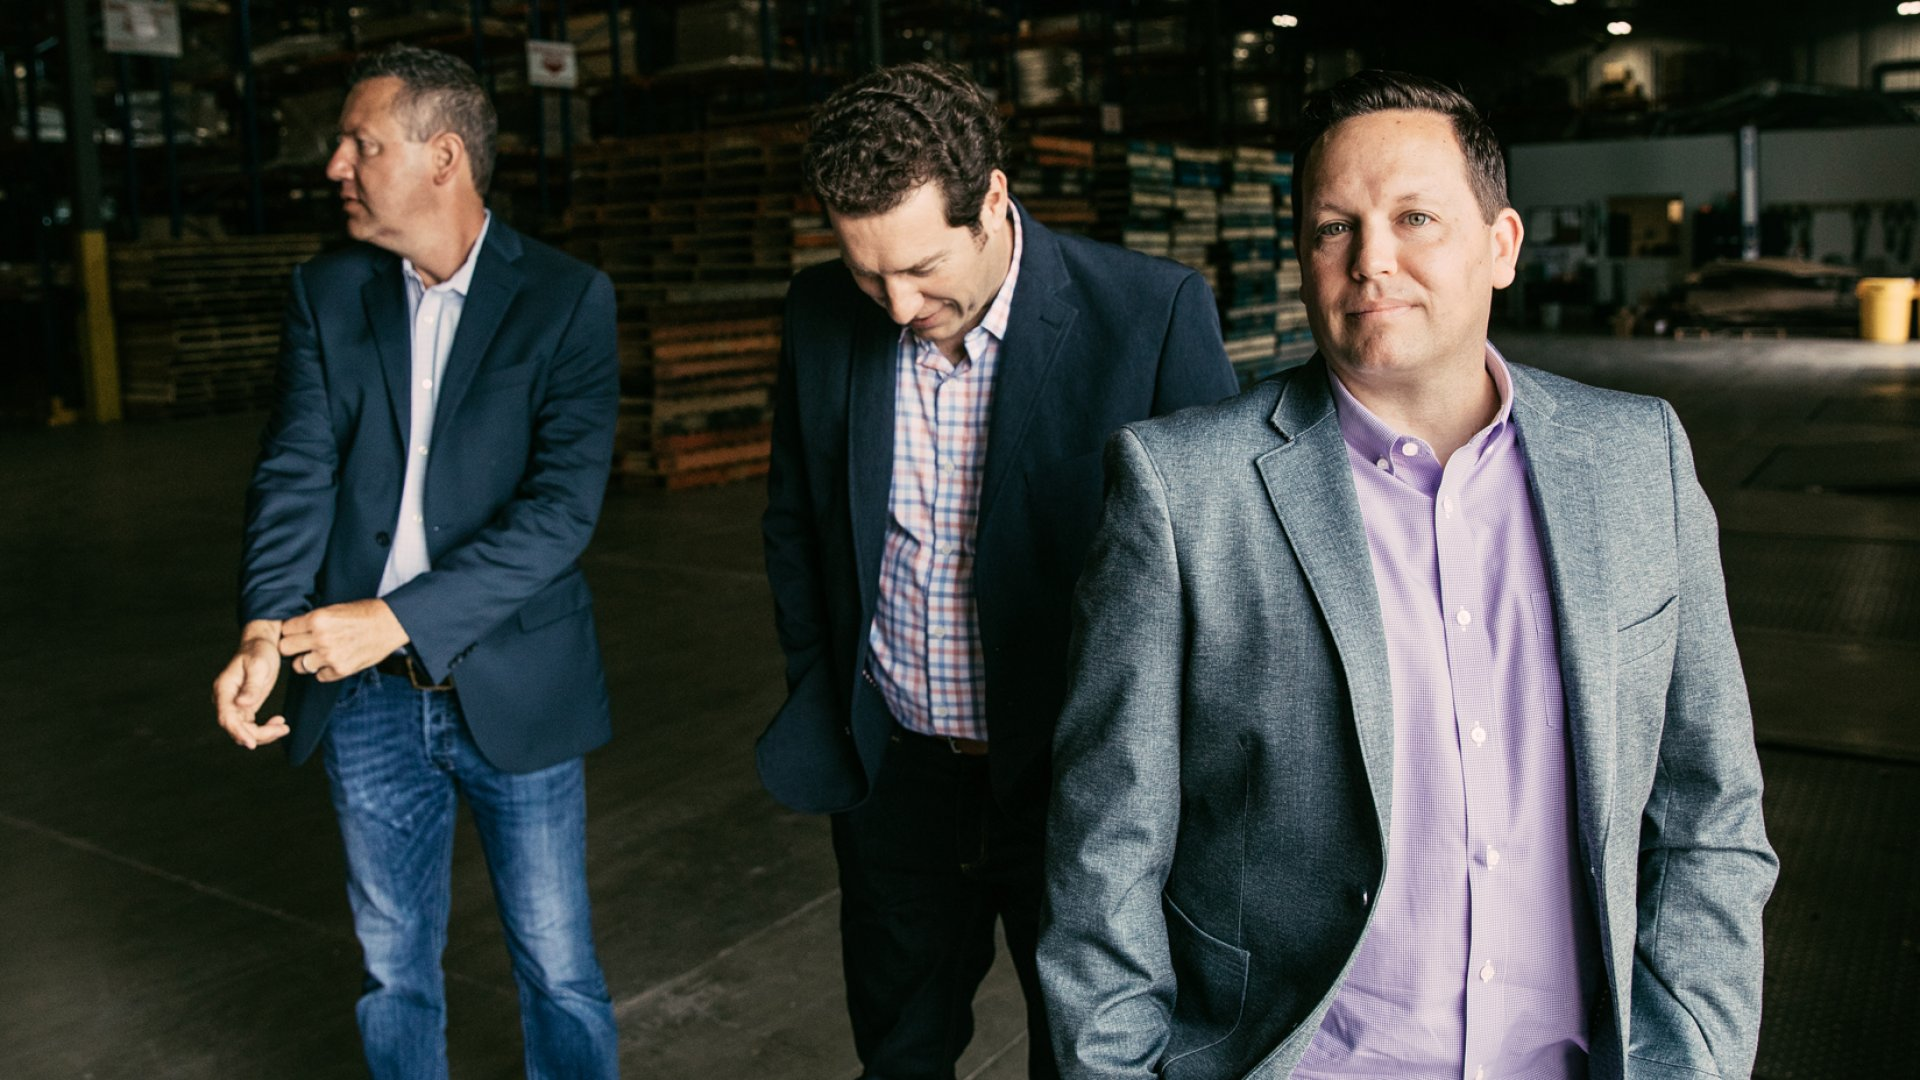 From left: Alex Rustioni, EVP of sales at Freightwise, Richard Hoehn, CIO, and Chris Cochran, CEO and co-founder.